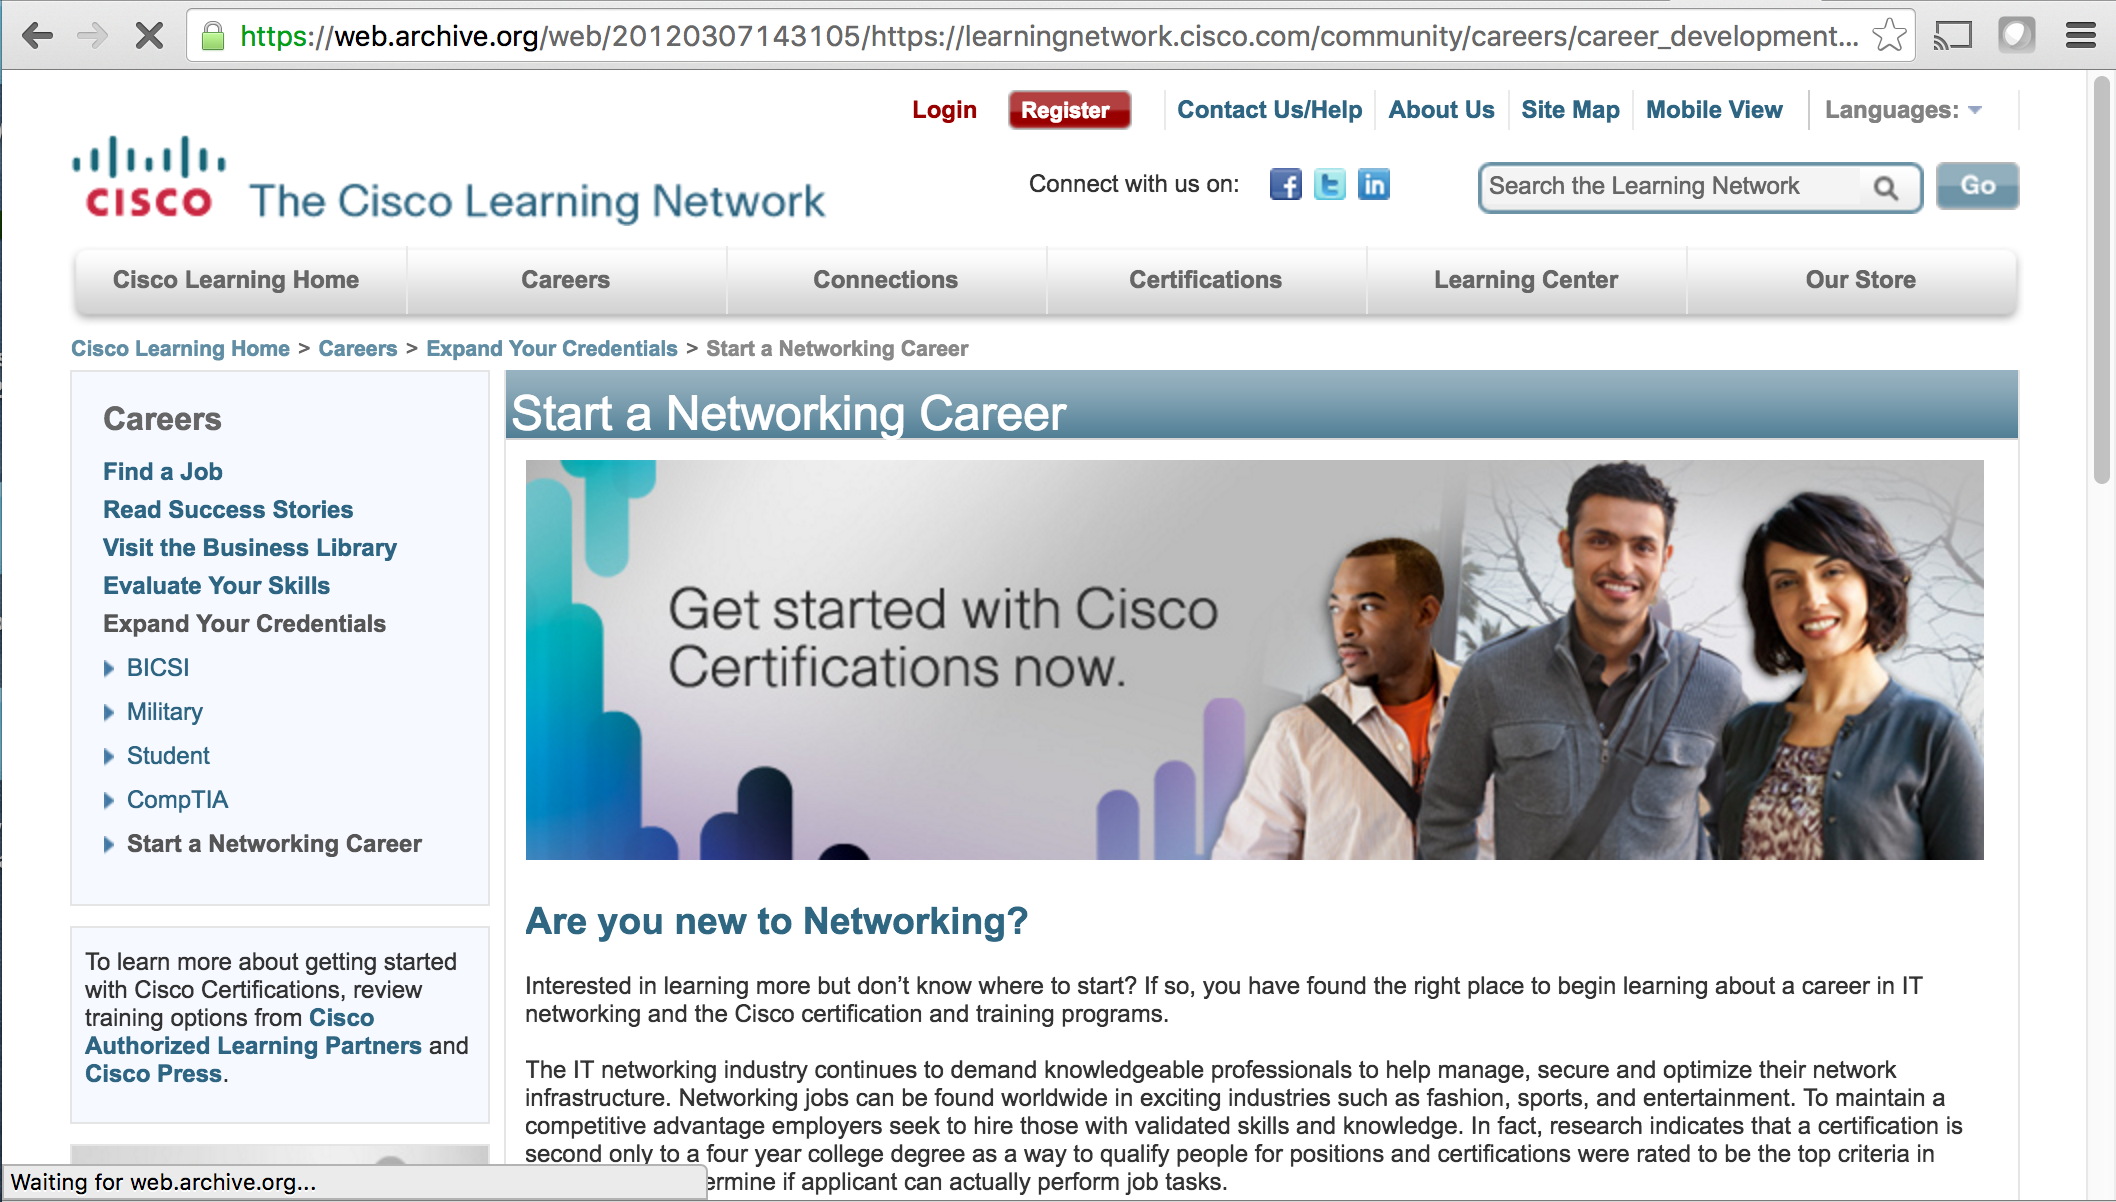 Careers Page - This was the Careers hub for those looking to explore a career in Cisco certified network administration. With numerous links to job postings and different career focus, this page received many hits per day. I designed and built the layout and graphics for the page.